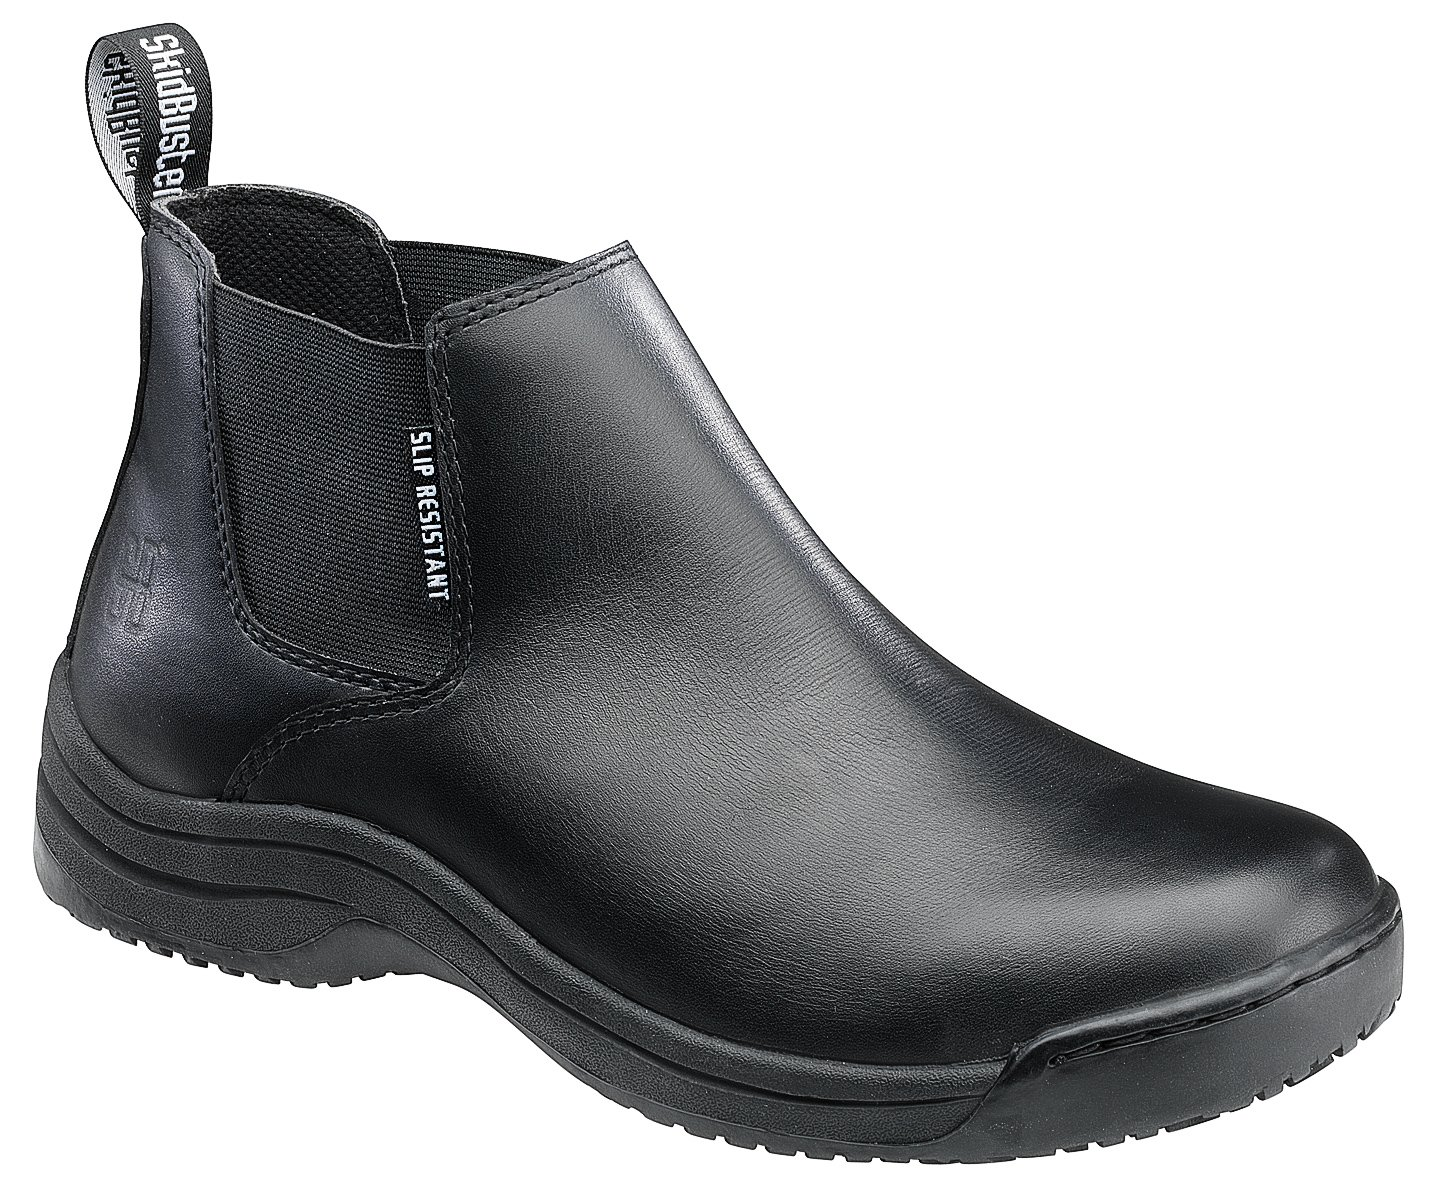 Skidbuster 5073 Men's Leather Slip Resistant Romeo,Black,12 W US